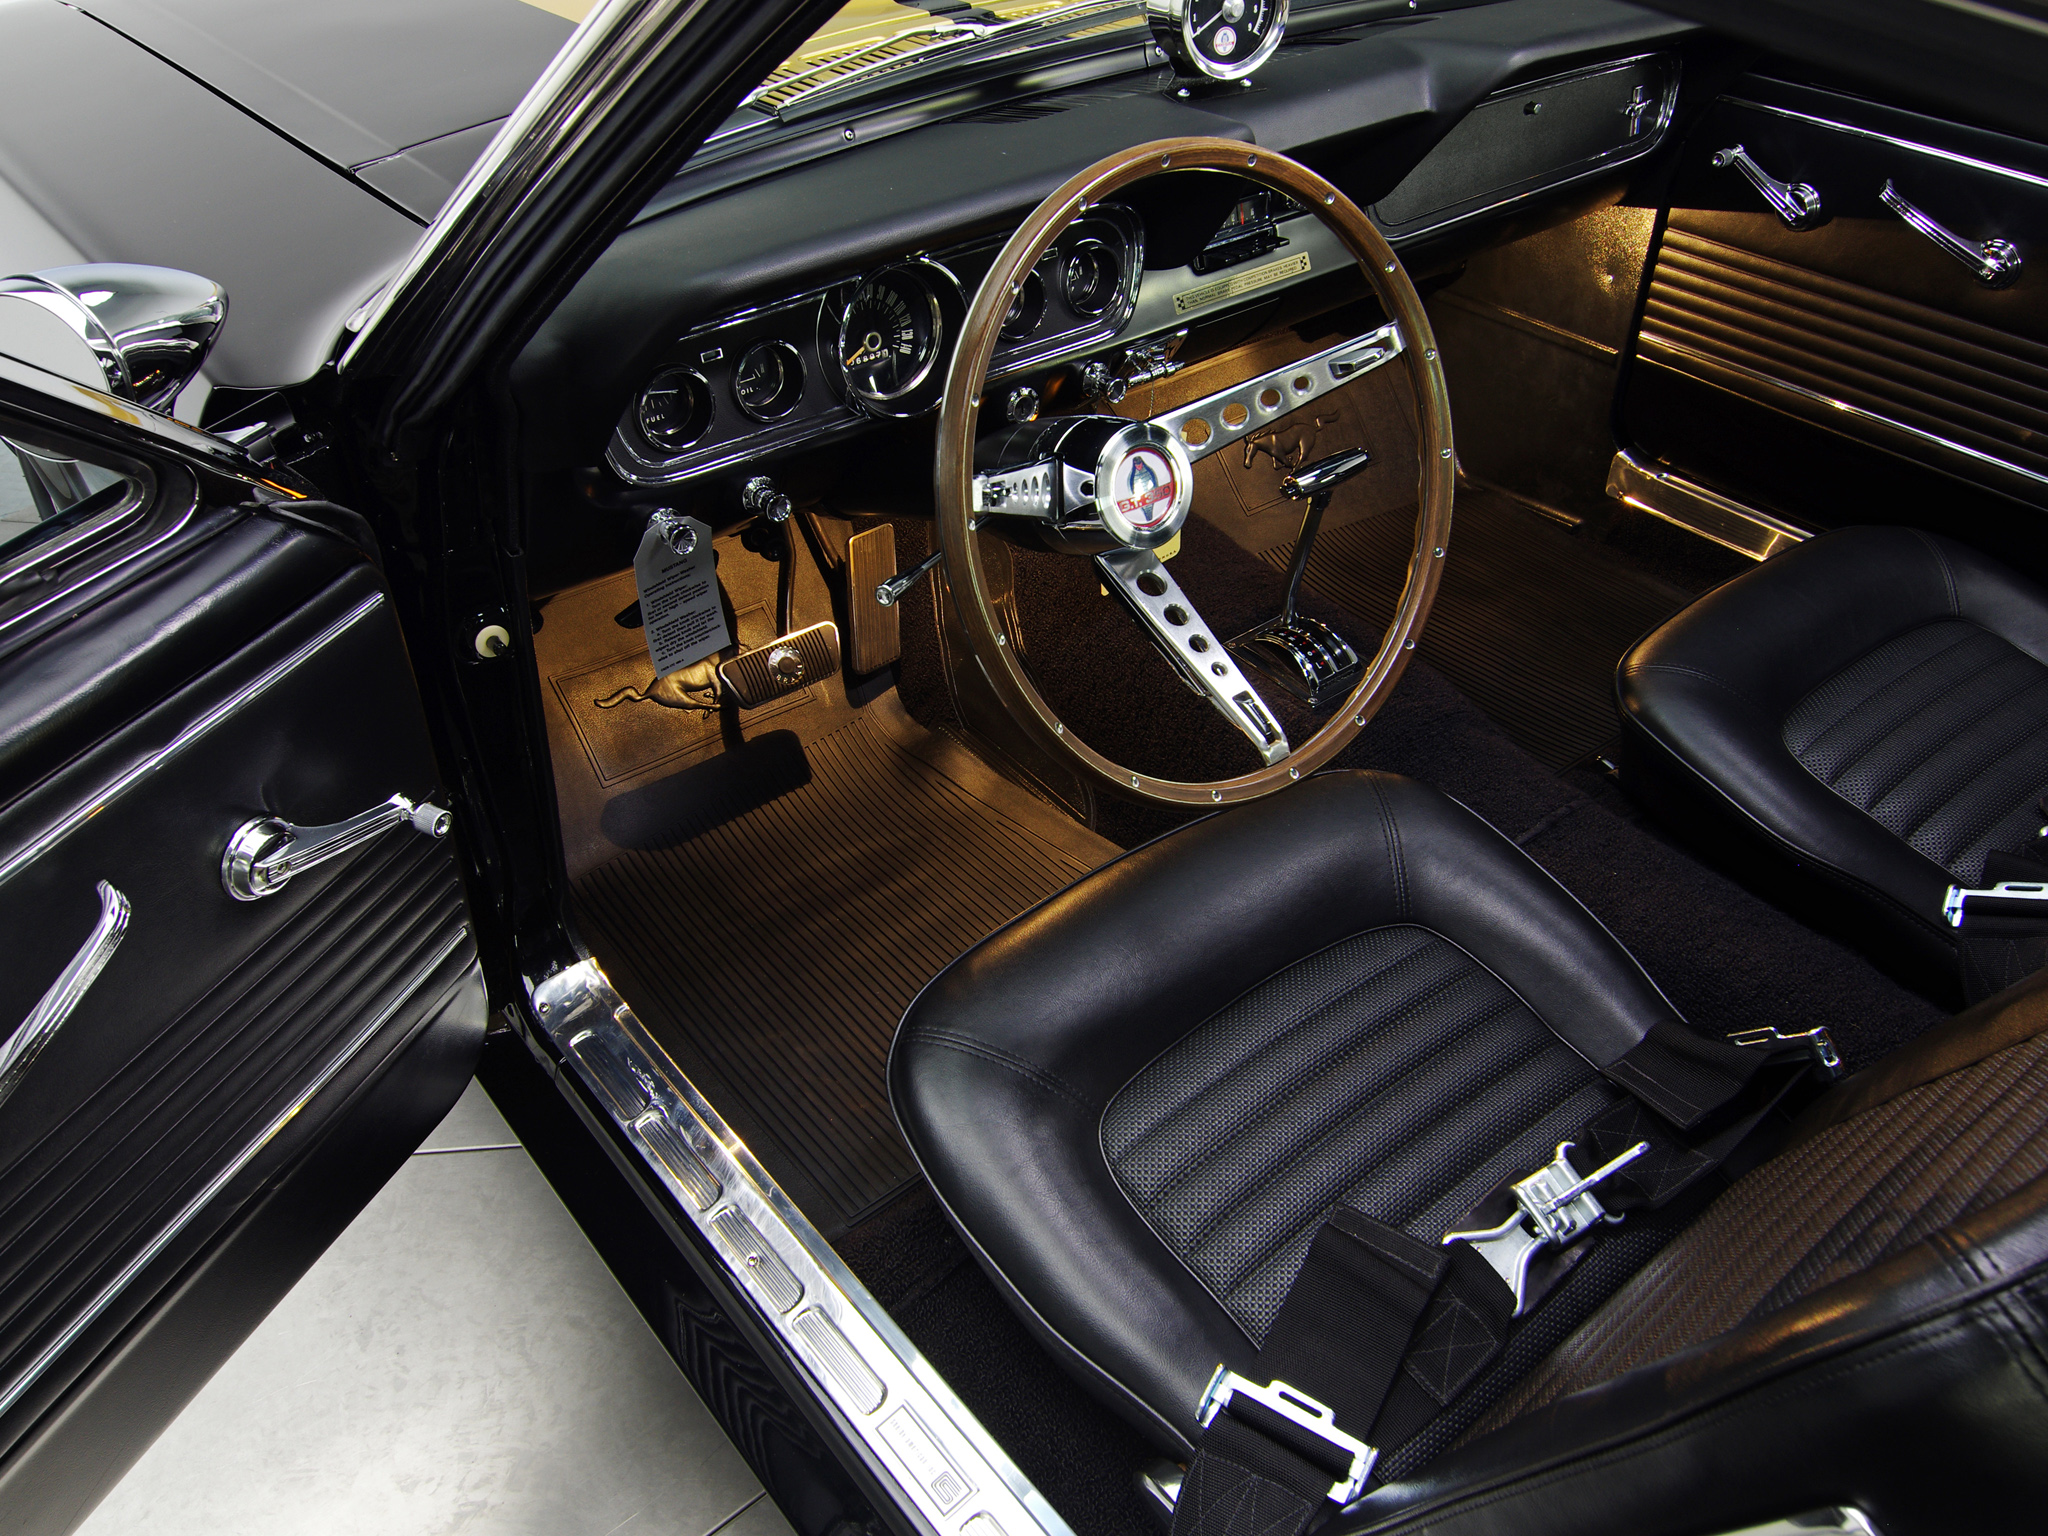 1966 shelby gt350h ford mustang classic muscle interior wallpaper 2048x1536 94469 wallpaperup. Black Bedroom Furniture Sets. Home Design Ideas